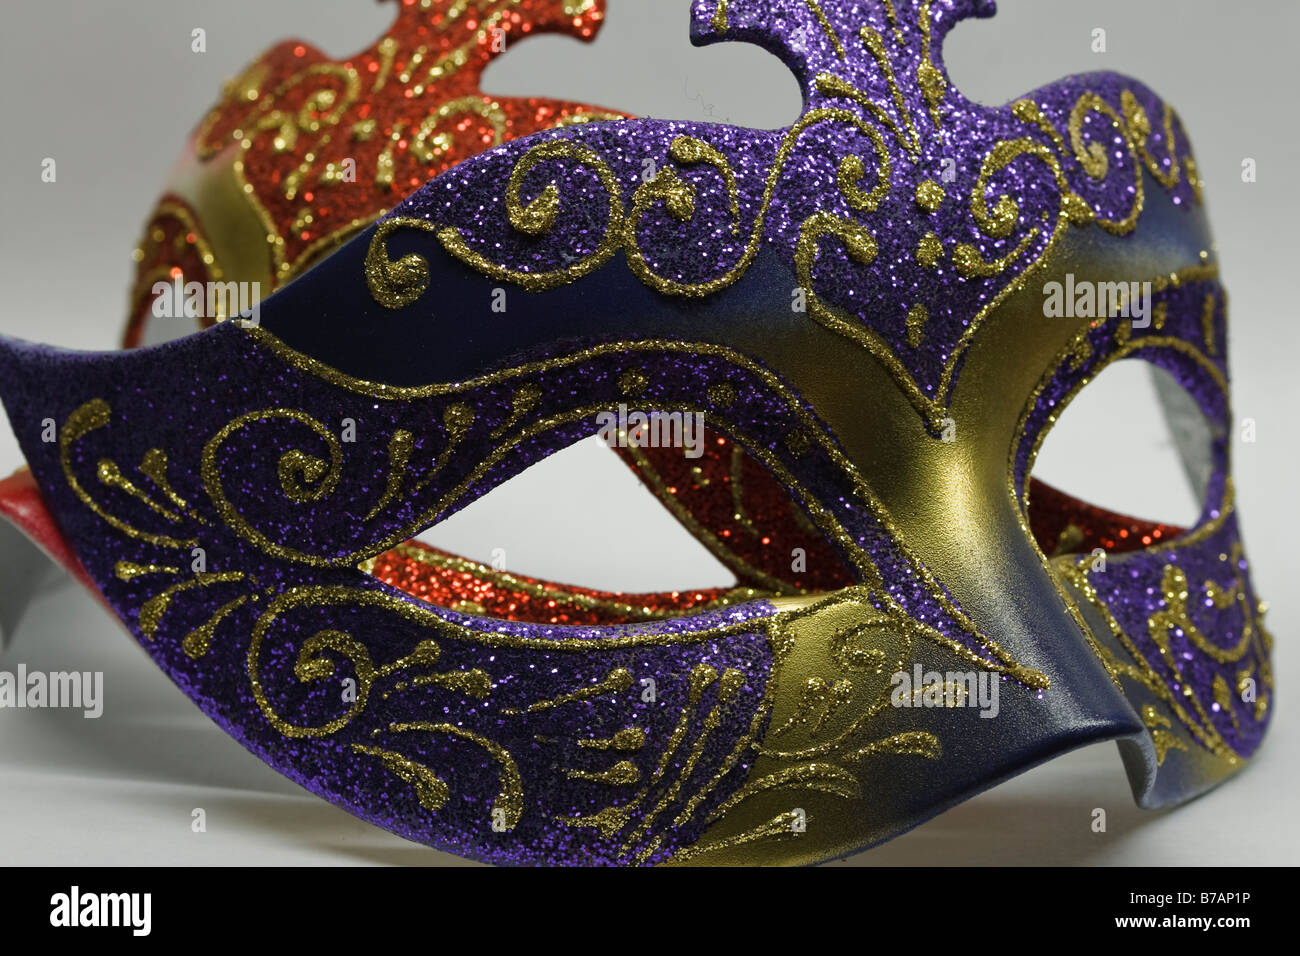 Decorative Masquerade Masks Two painted decorative masquerade masks Stock Photo Royalty Free 46